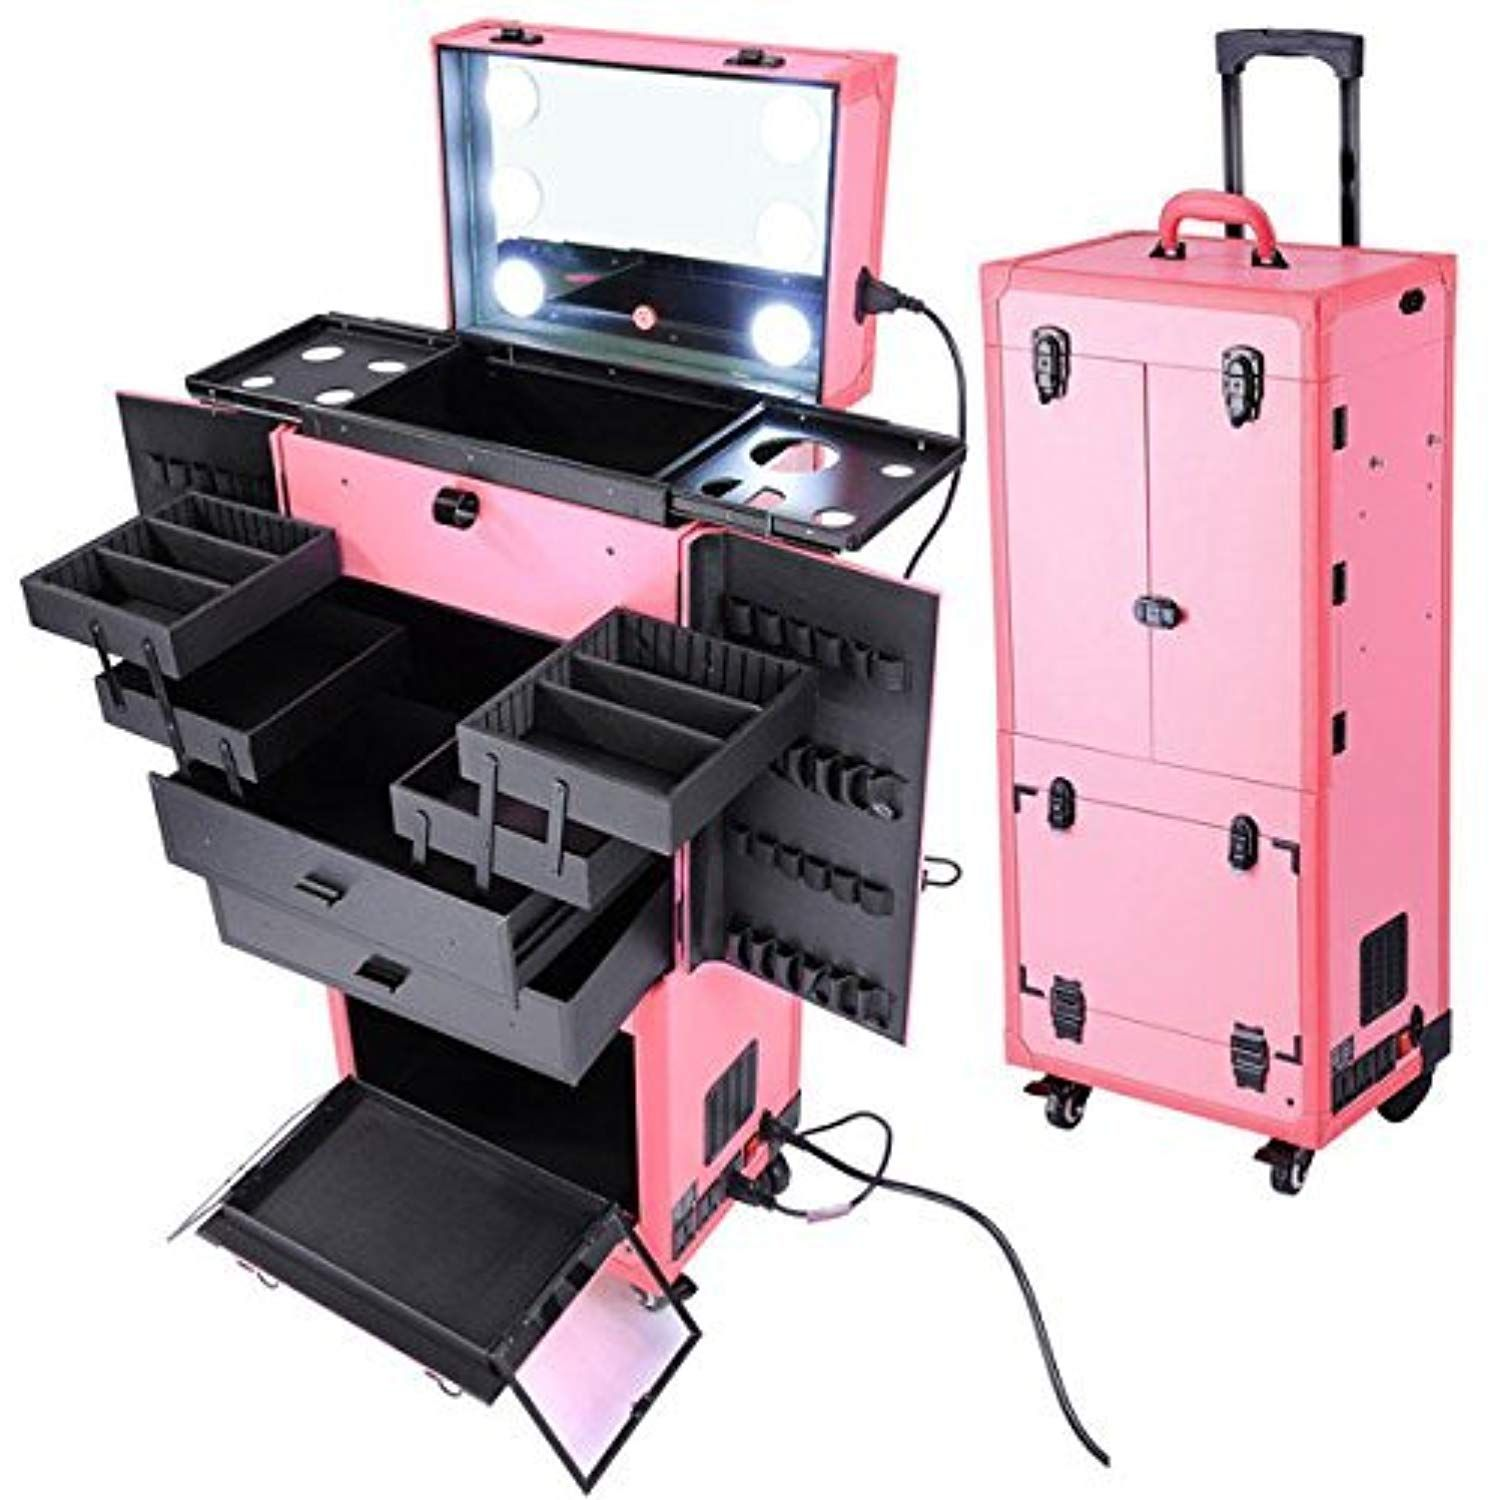 Leemas Inc Professional Artist Rolling Makeup Cosmetics Case W Led Lights And Mirror Drawers Trolley Box Trav Makeup Artist Kit Rolling Makeup Case Makeup Case